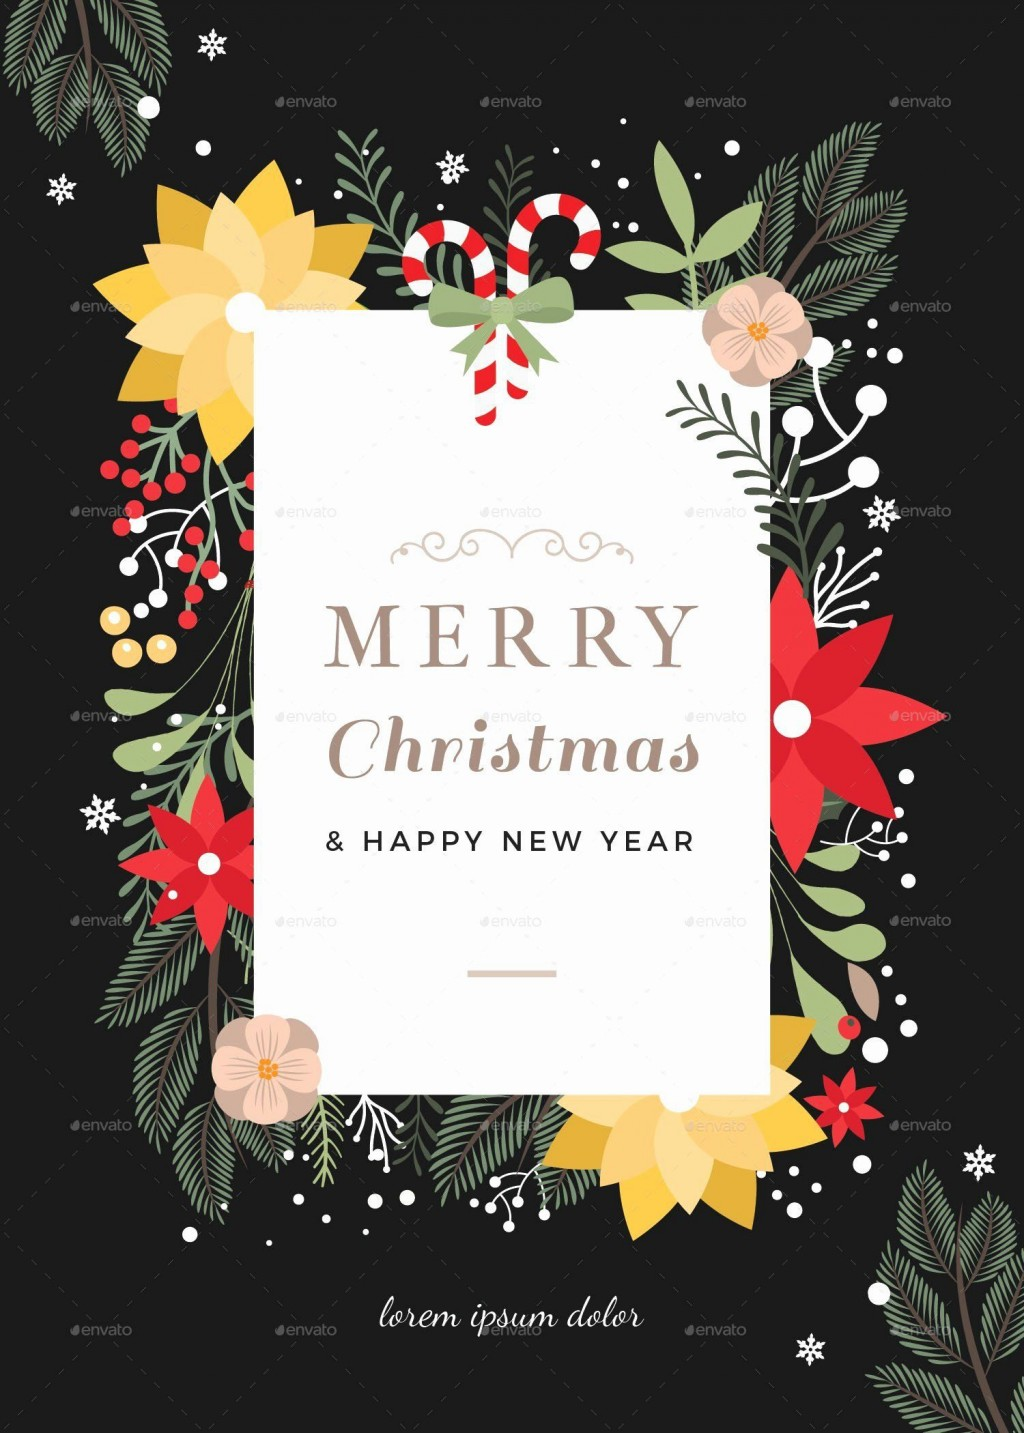 003 Phenomenal Christma Card Template Free Download Photo  Downloads Photoshop EditableLarge